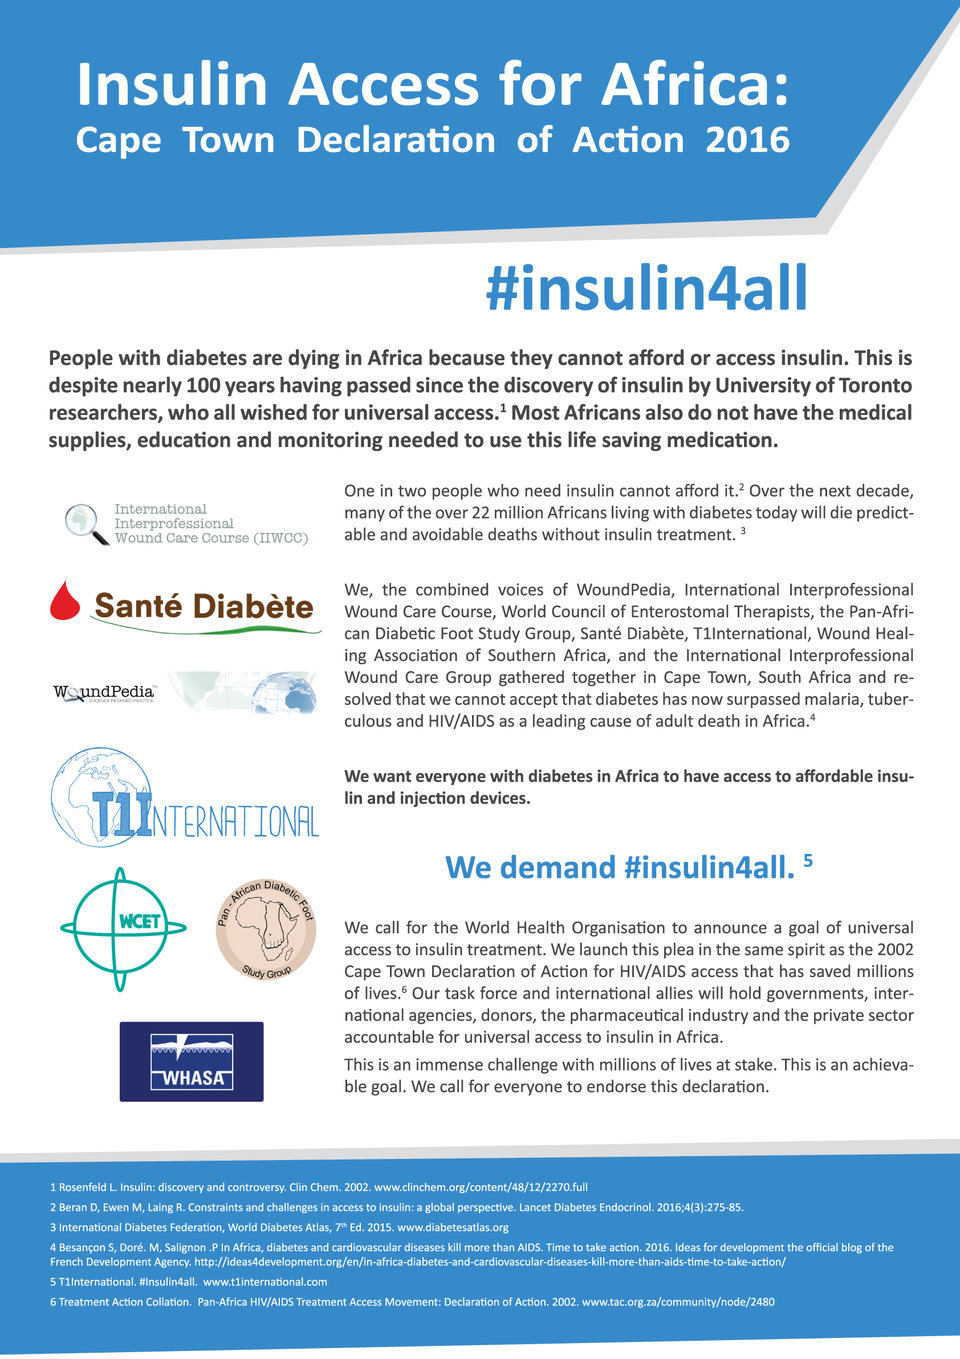 #insulin4all, Cape Town Declaration